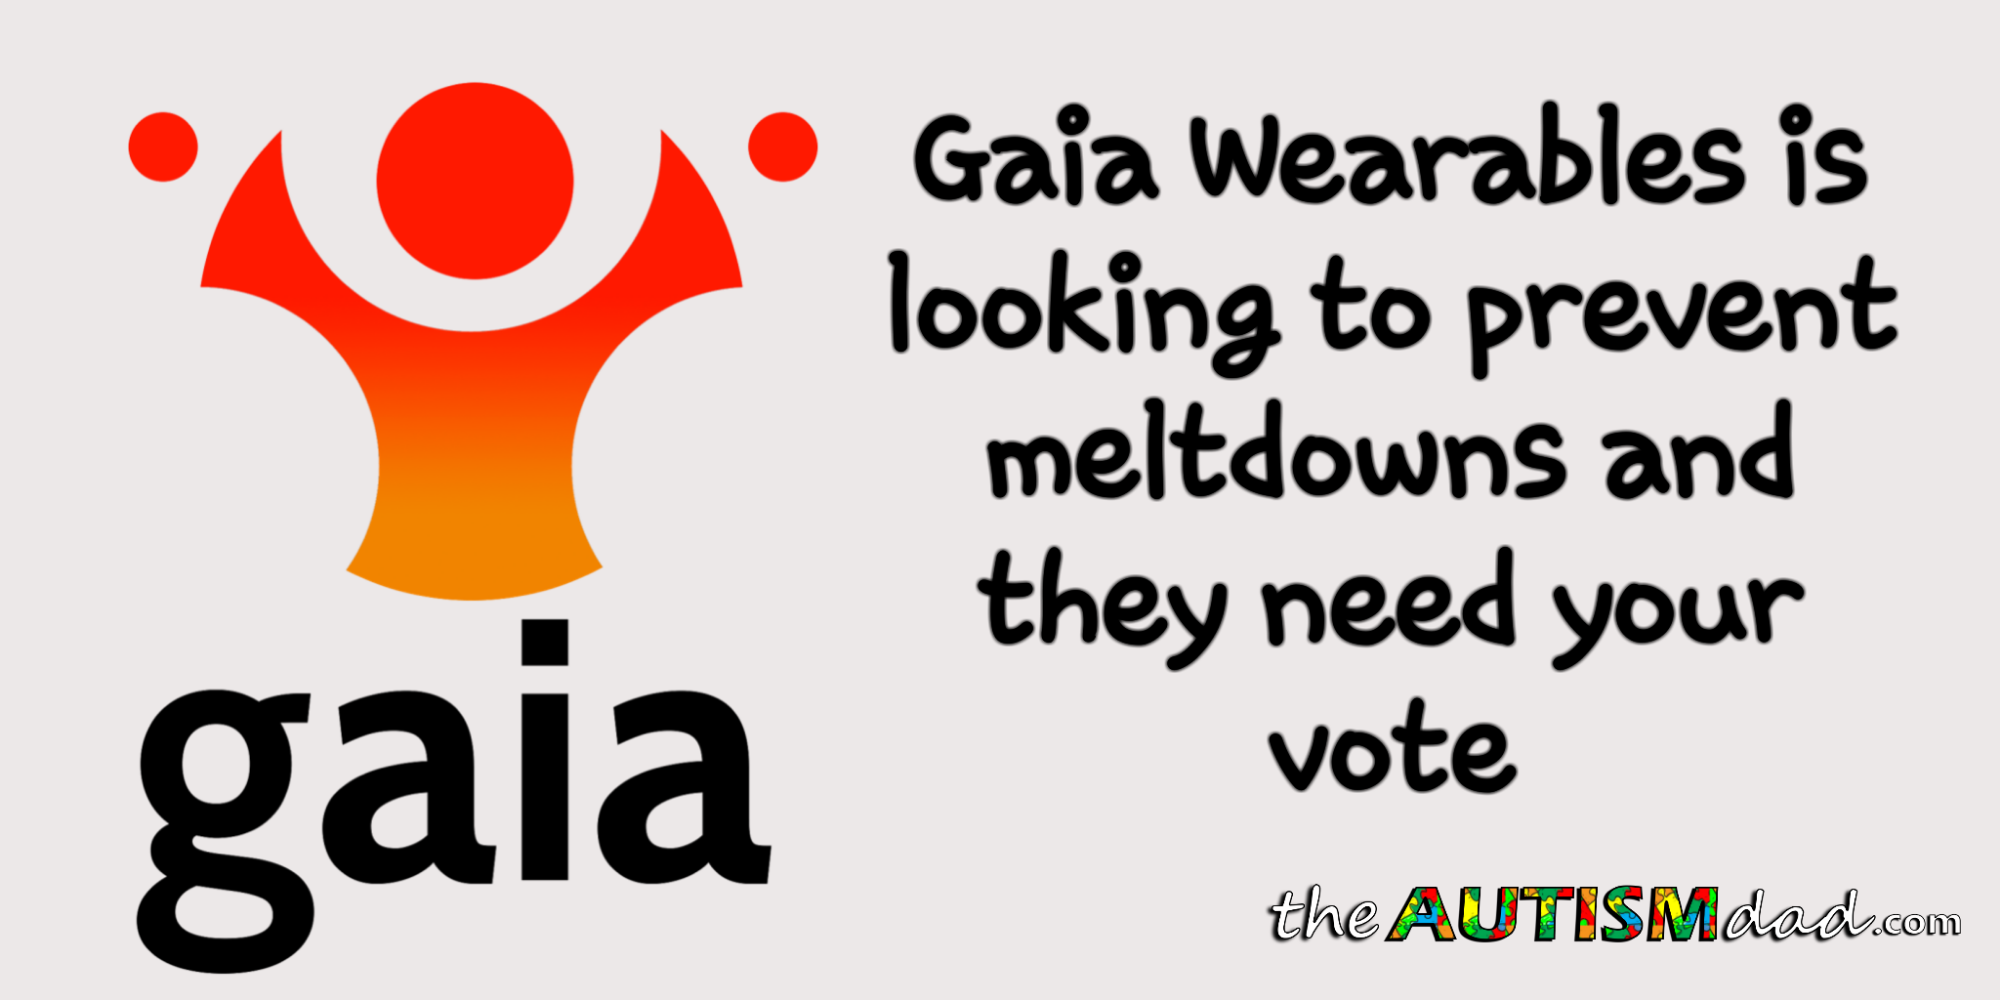 . @GaiaWearables is looking to prevent #Meltdowns and they need your vote